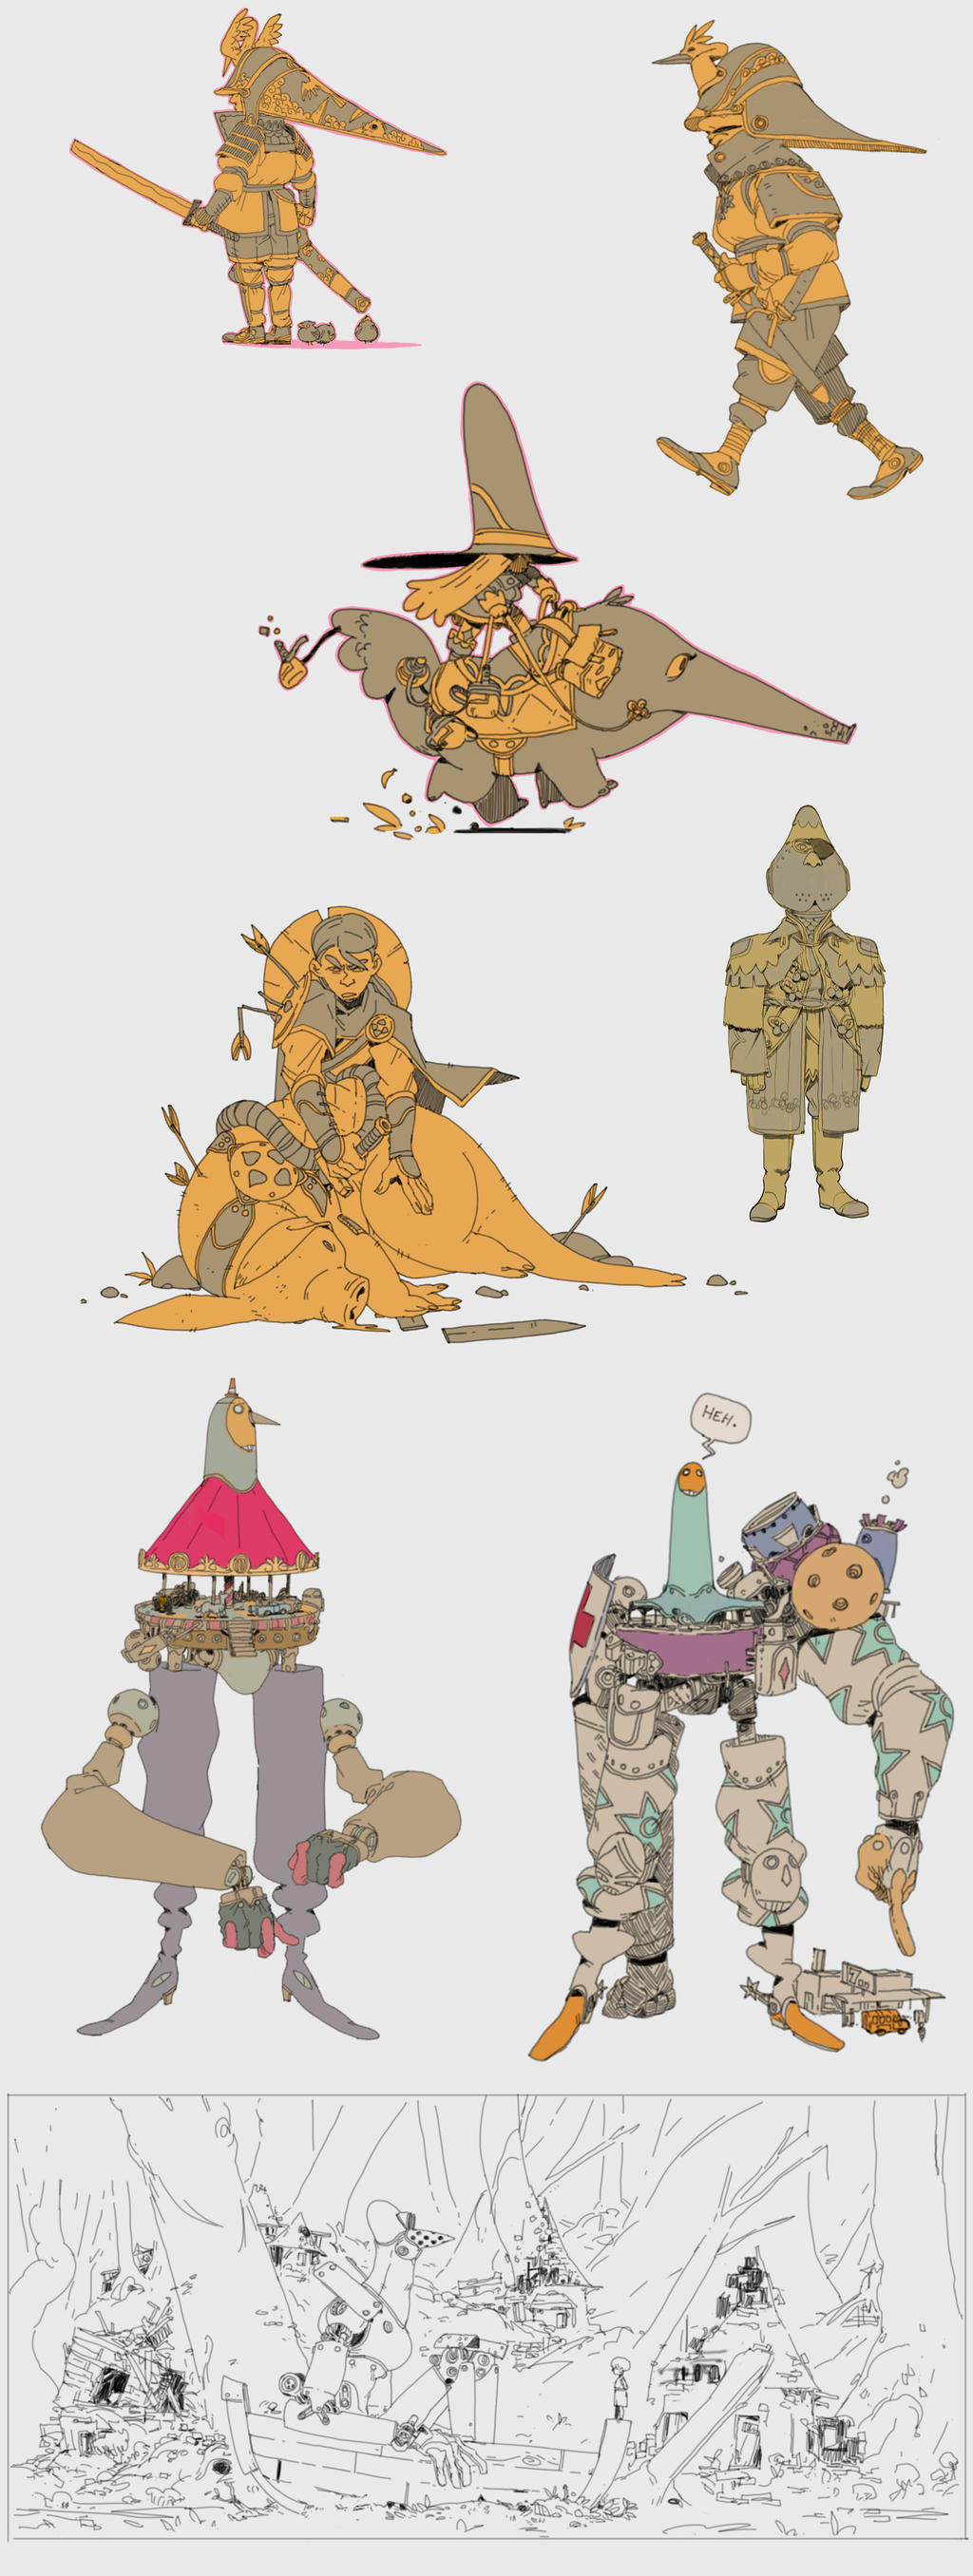 some sketches by Zedig